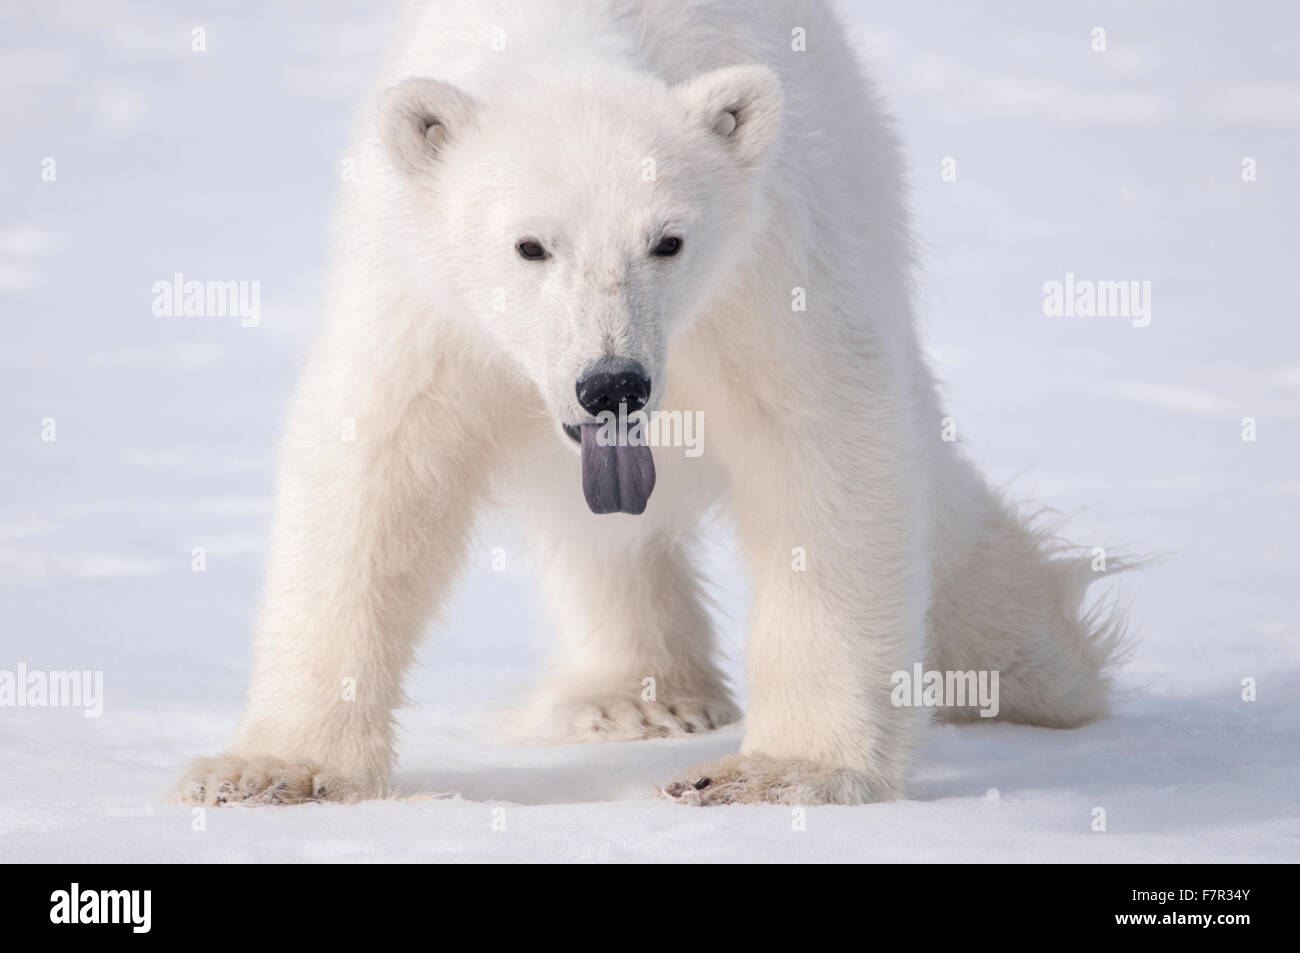 A Young Polar Bear (Ursus Maritimus) sticks out it's tongue to taste the air in Sallyhamna, Spitsbergen, Svalbard - Stock Image